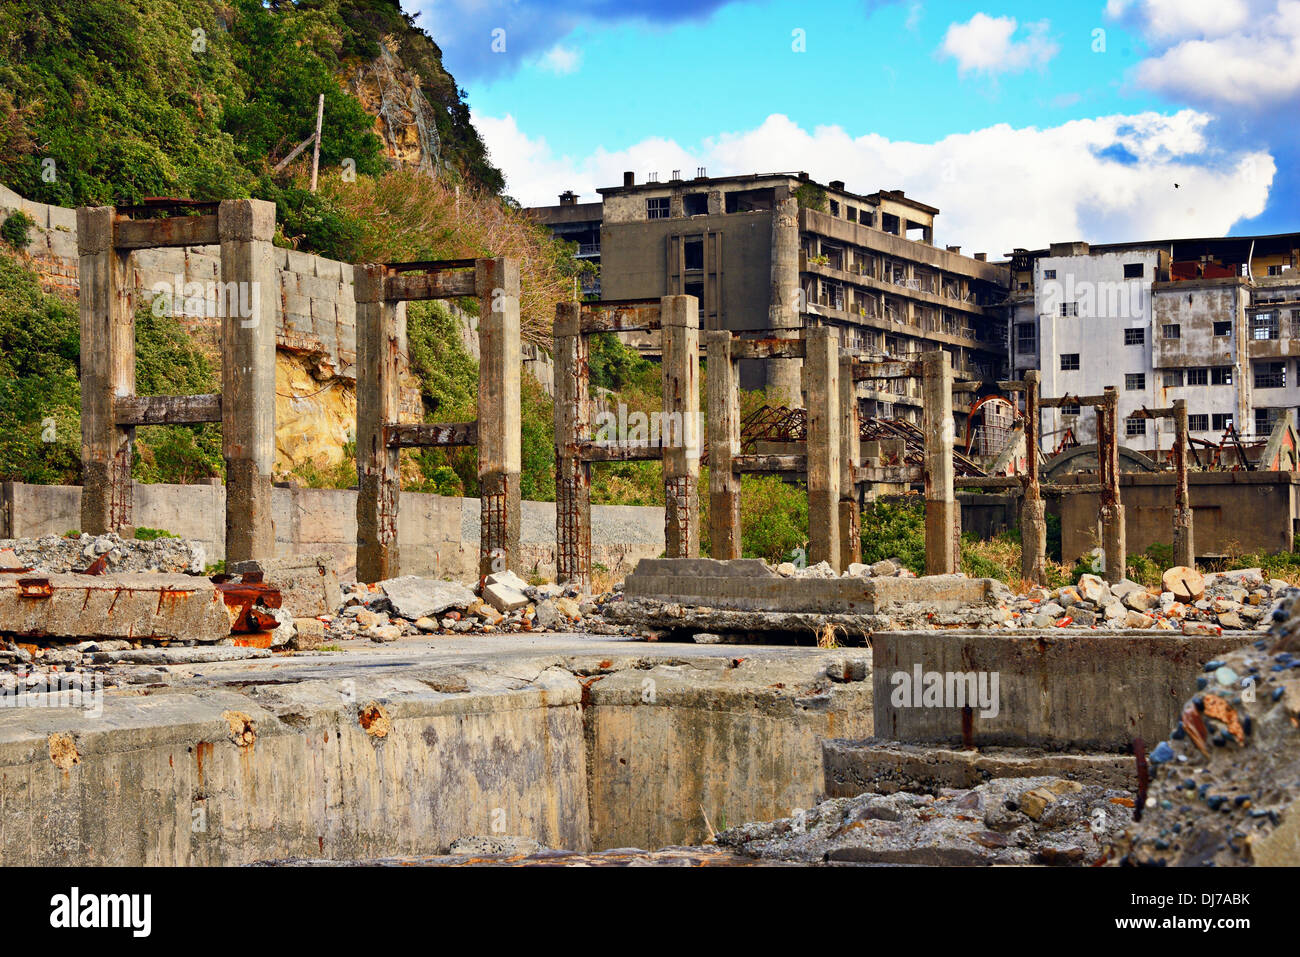 The abandoned industrial island of Gunkanjima, Nagasaki, Japan. - Stock Image